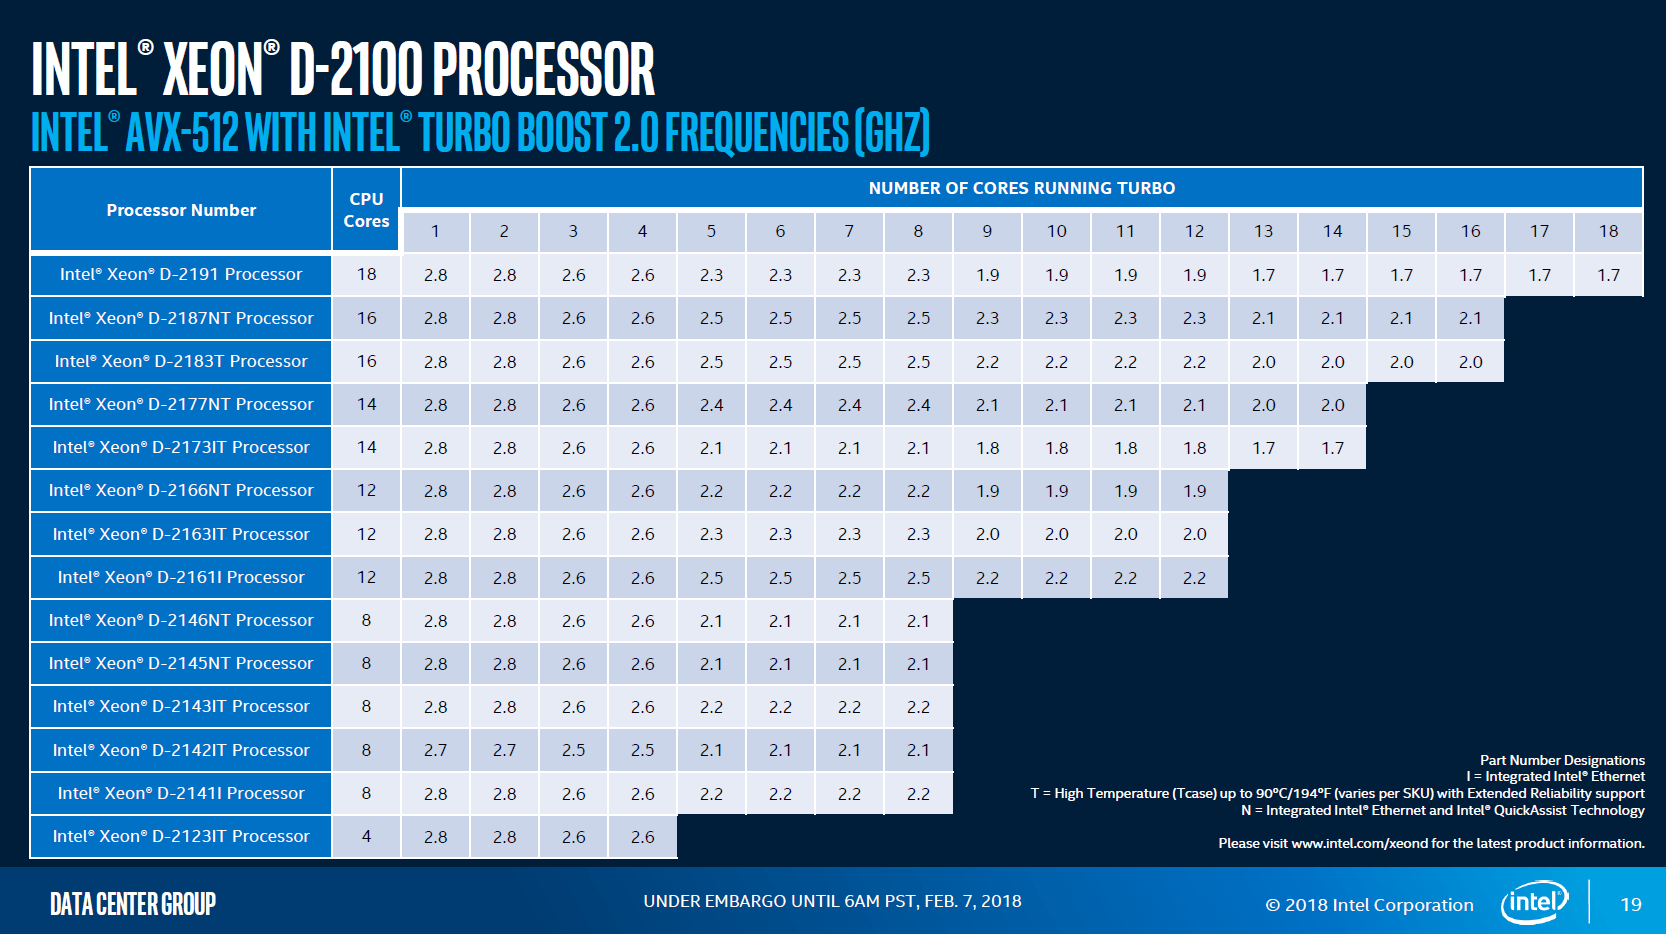 Intel Xeon D-2100 Taktraten mit Turbo bei AVX-512